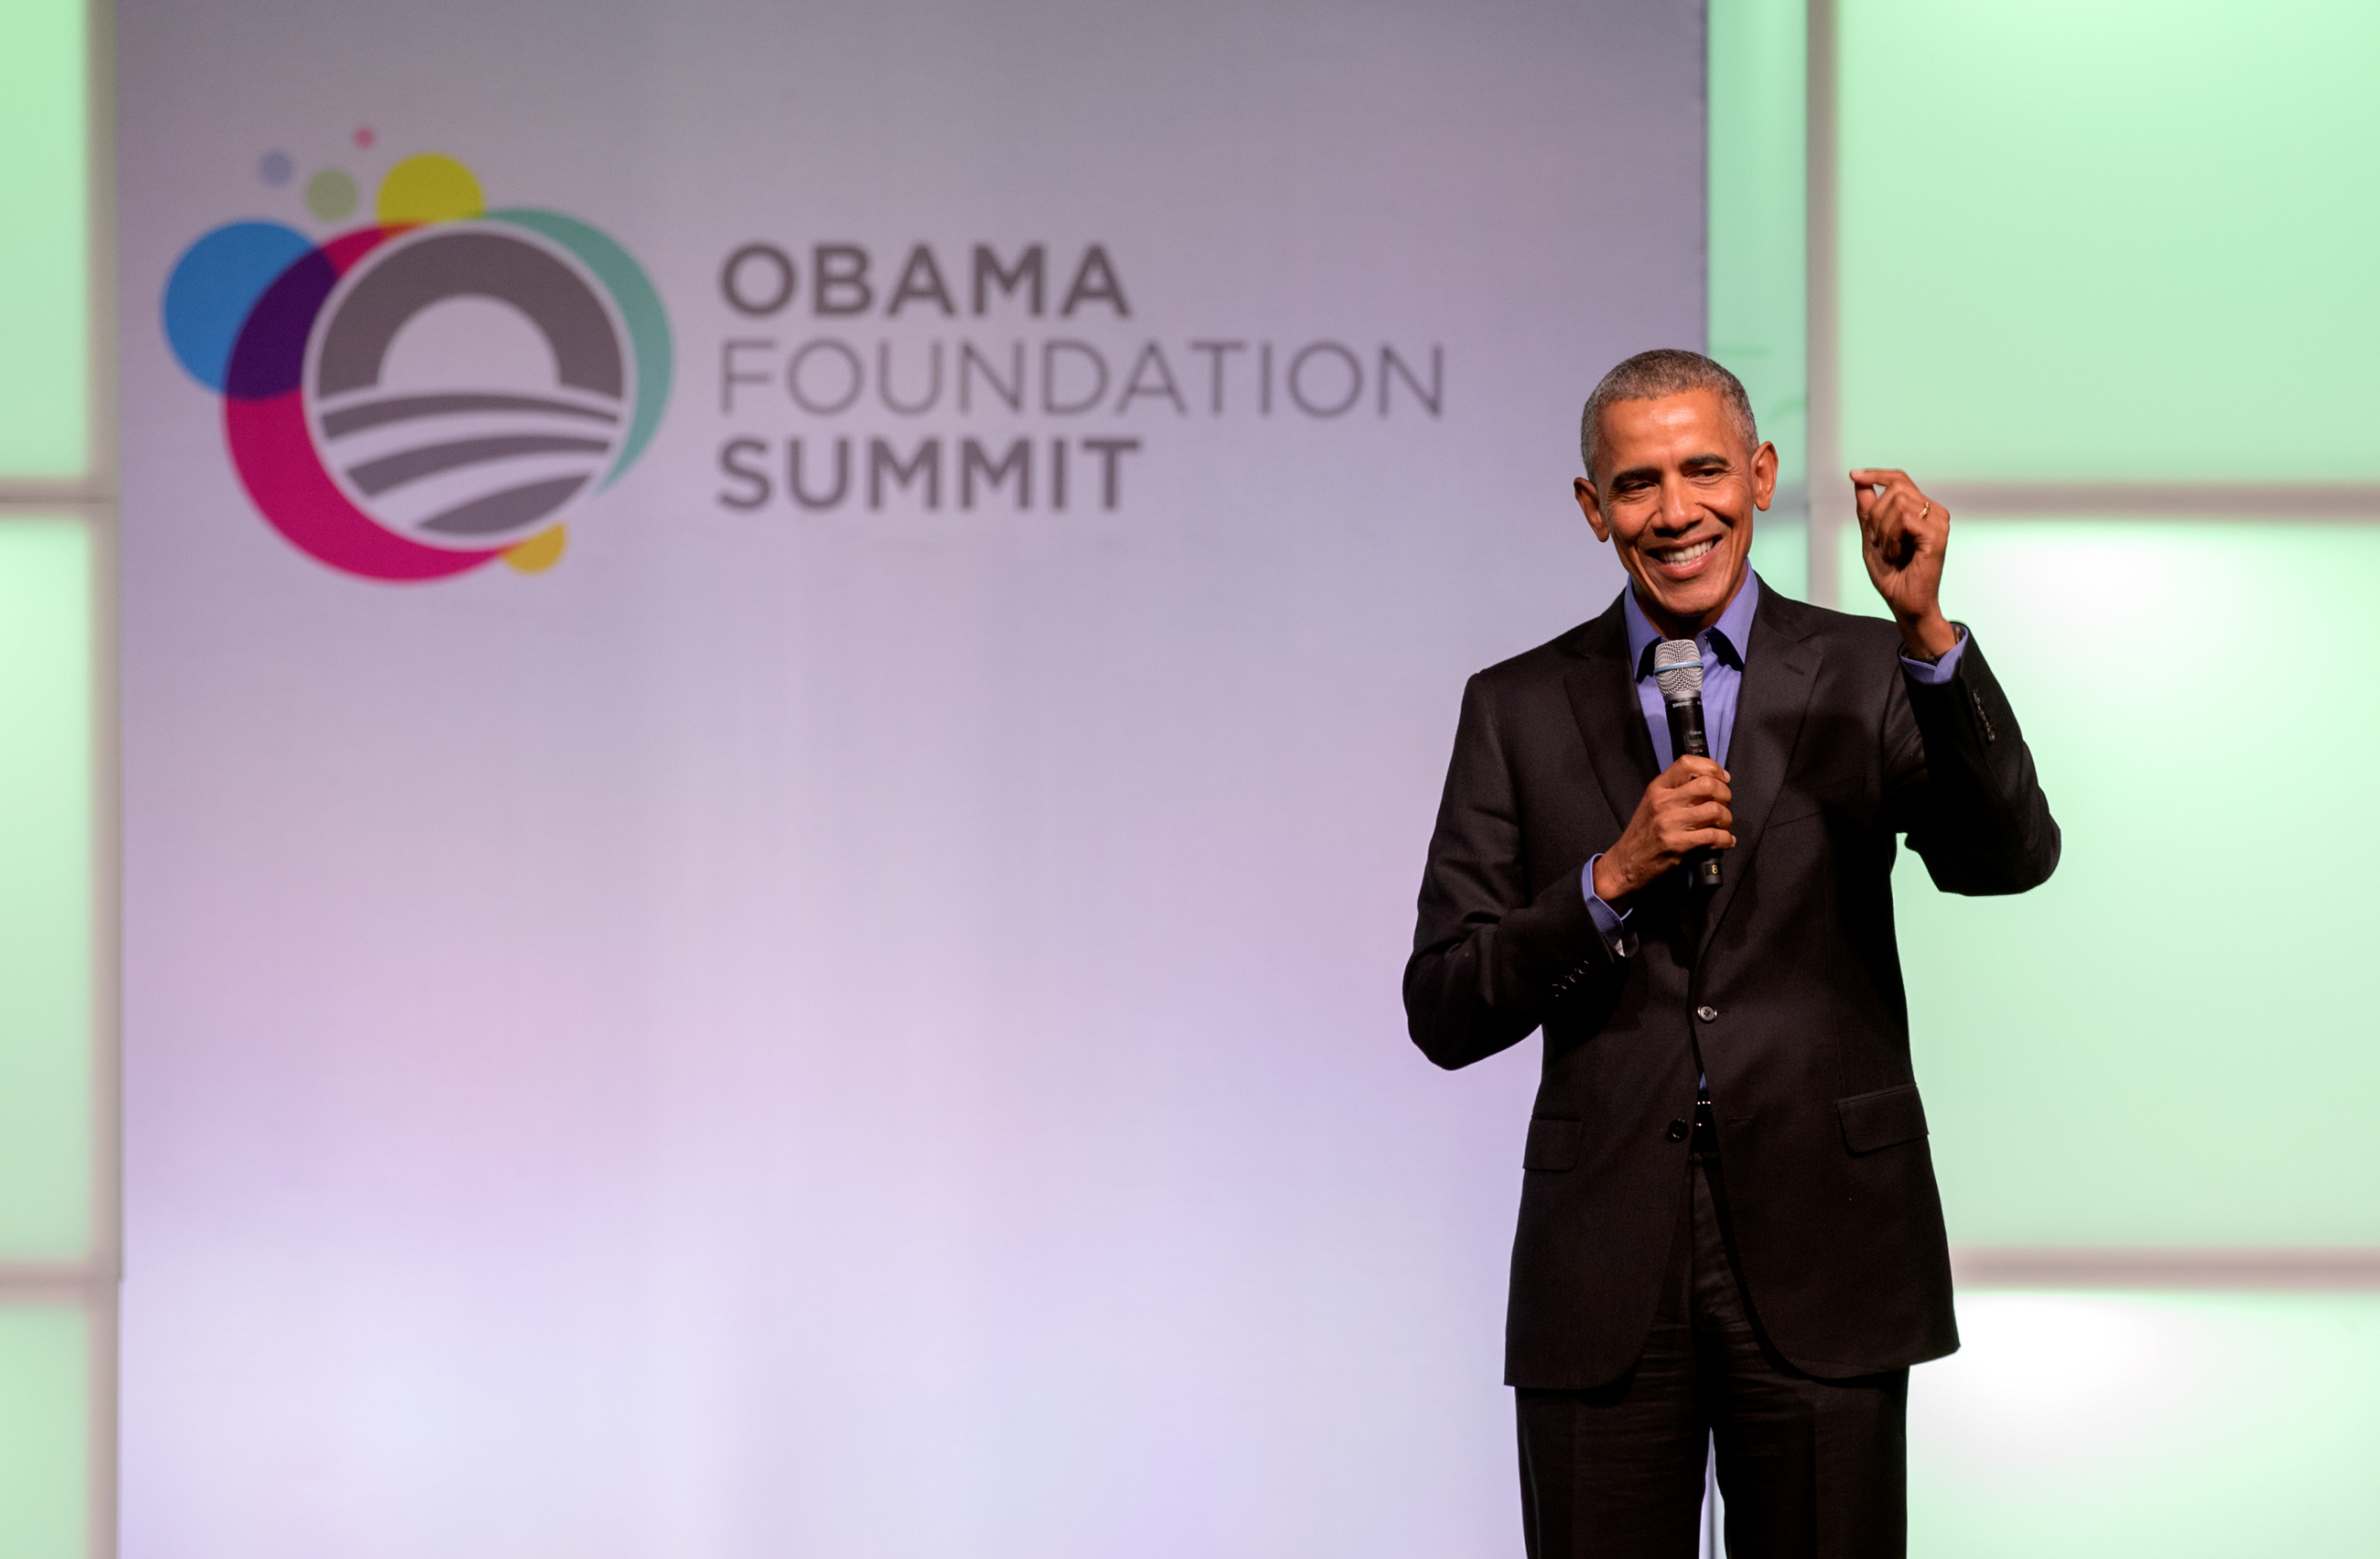 Former President Barack Obama speaks onstage at the closing session for the inaugural Obama Foundation Summit in Chicago on Wednesday, Nov. 1. (Andrew Gill/WBEZ)